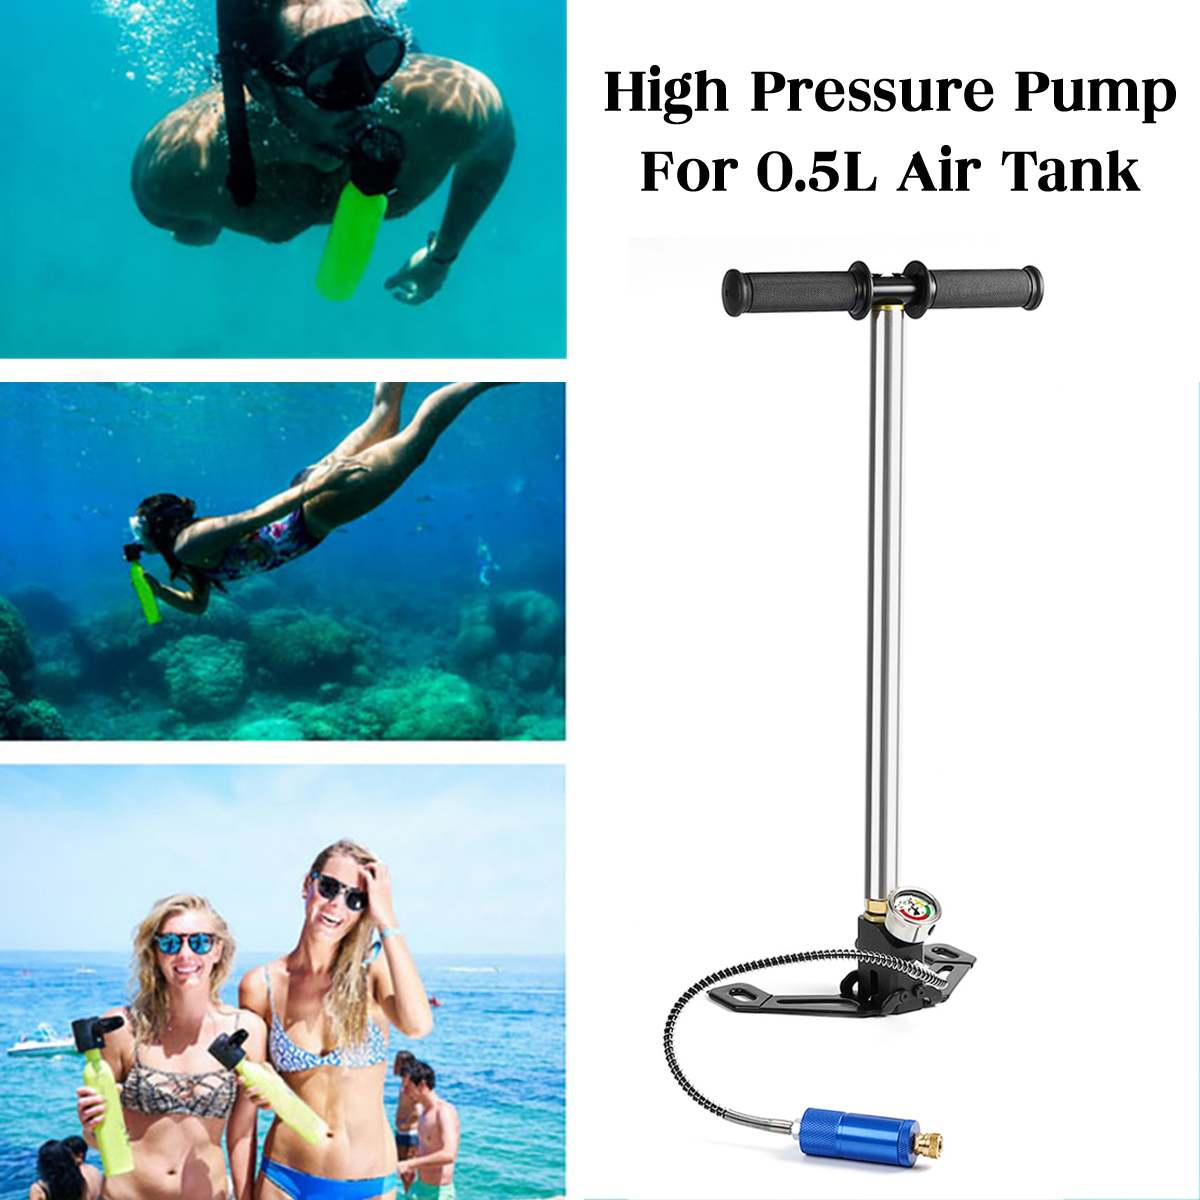 For 0.5L Scuba Diving Spare Tank Hand Pump Oxygen Air Tank Hand Operated Pump 20MPA 3000Psi For SMACO Spare Underwater BreathingFor 0.5L Scuba Diving Spare Tank Hand Pump Oxygen Air Tank Hand Operated Pump 20MPA 3000Psi For SMACO Spare Underwater Breathing